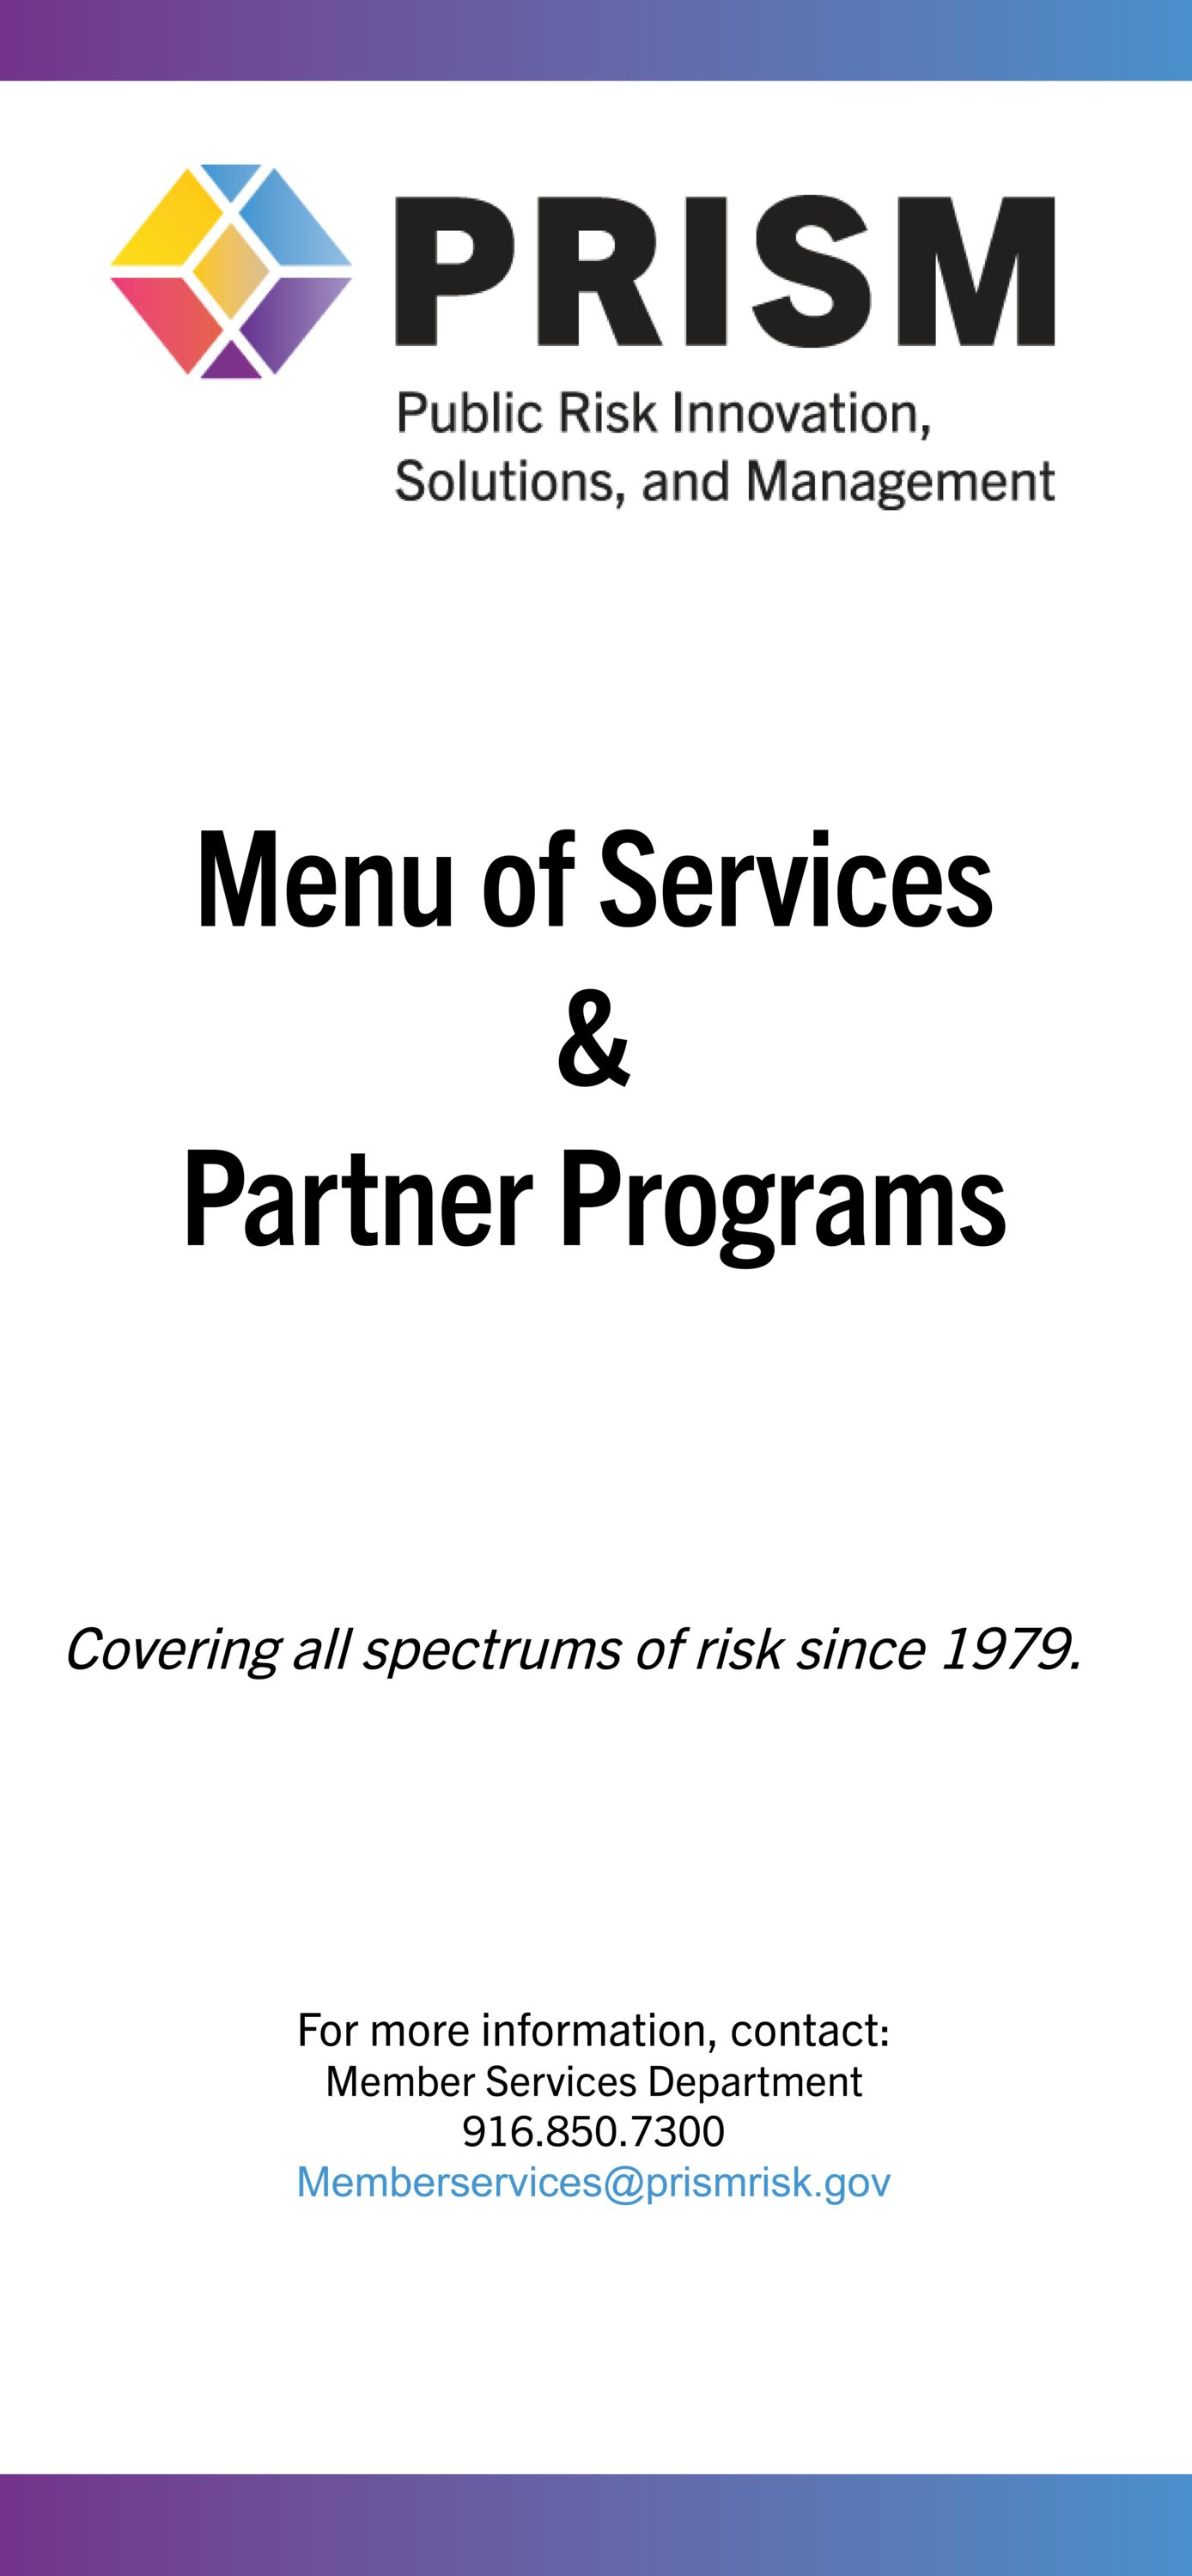 PRISM Menu of Services